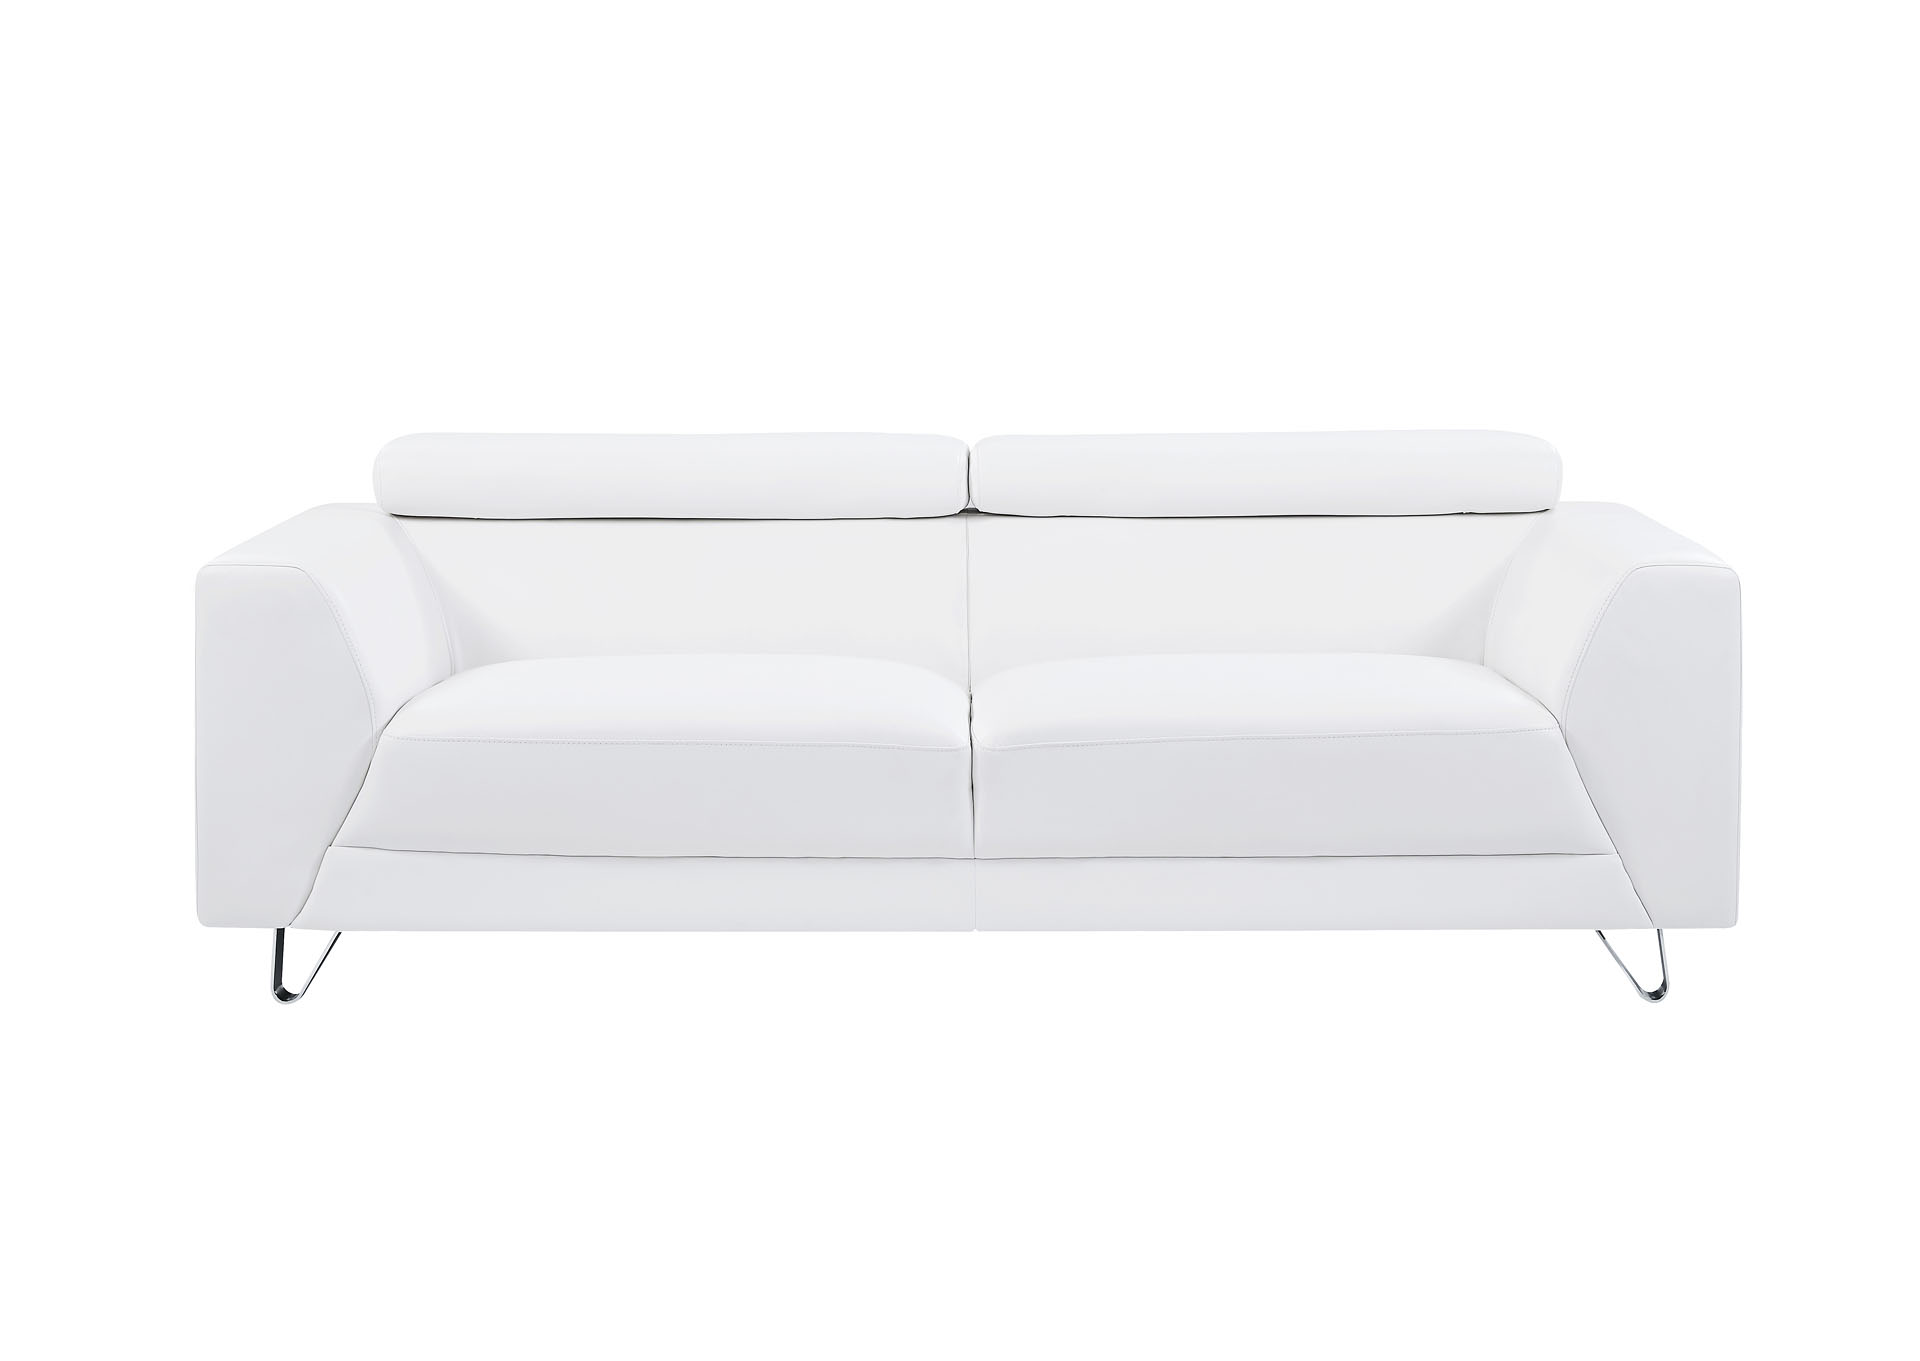 Pluto White Sofa,Global Furniture USA